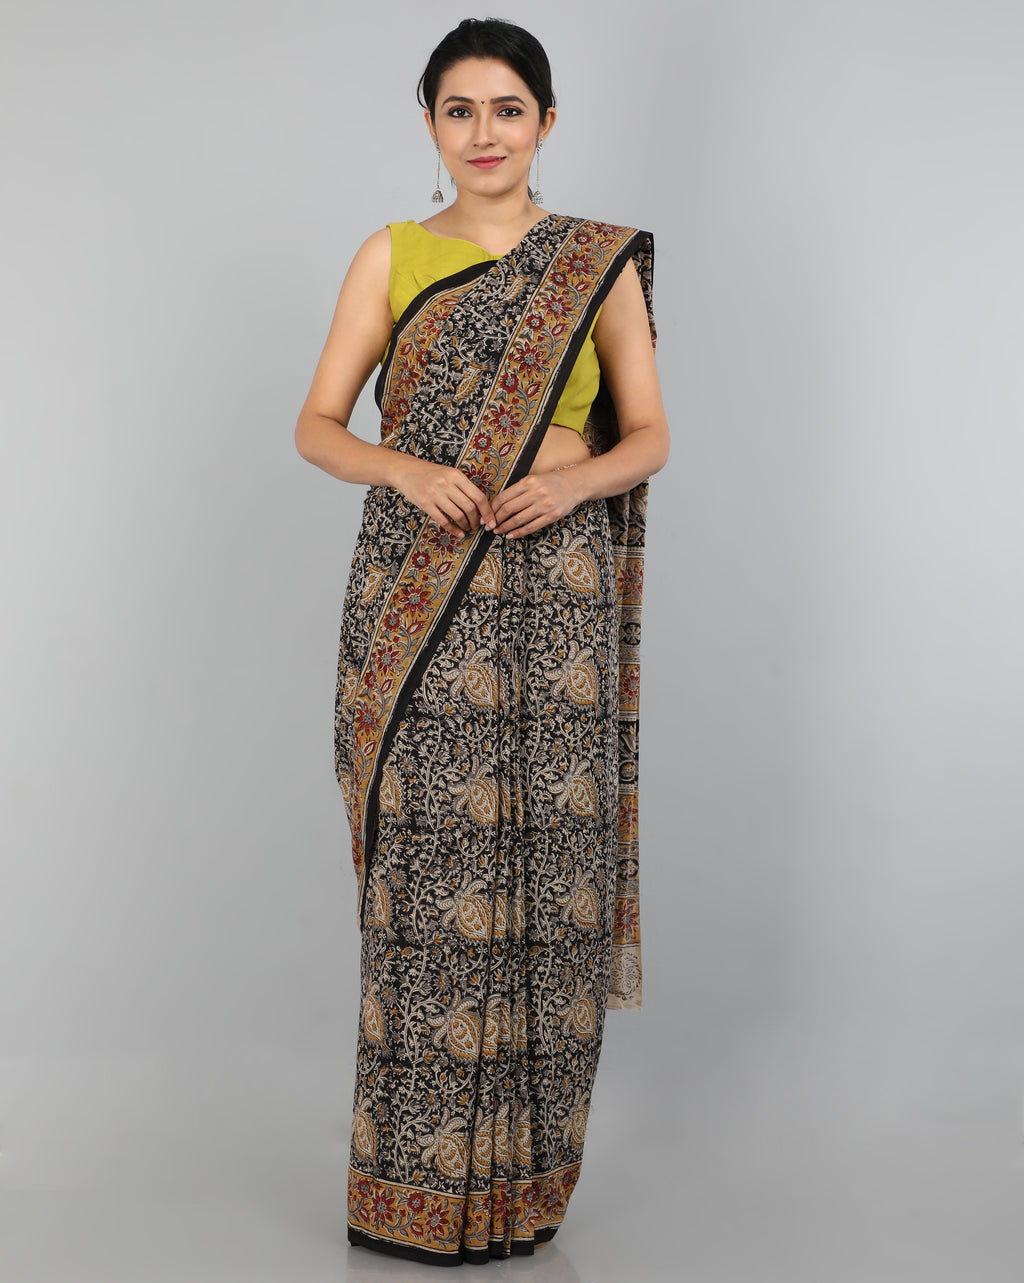 Pedana Kalamkari - Hand Block Printed - Mul Cotton Saree 05